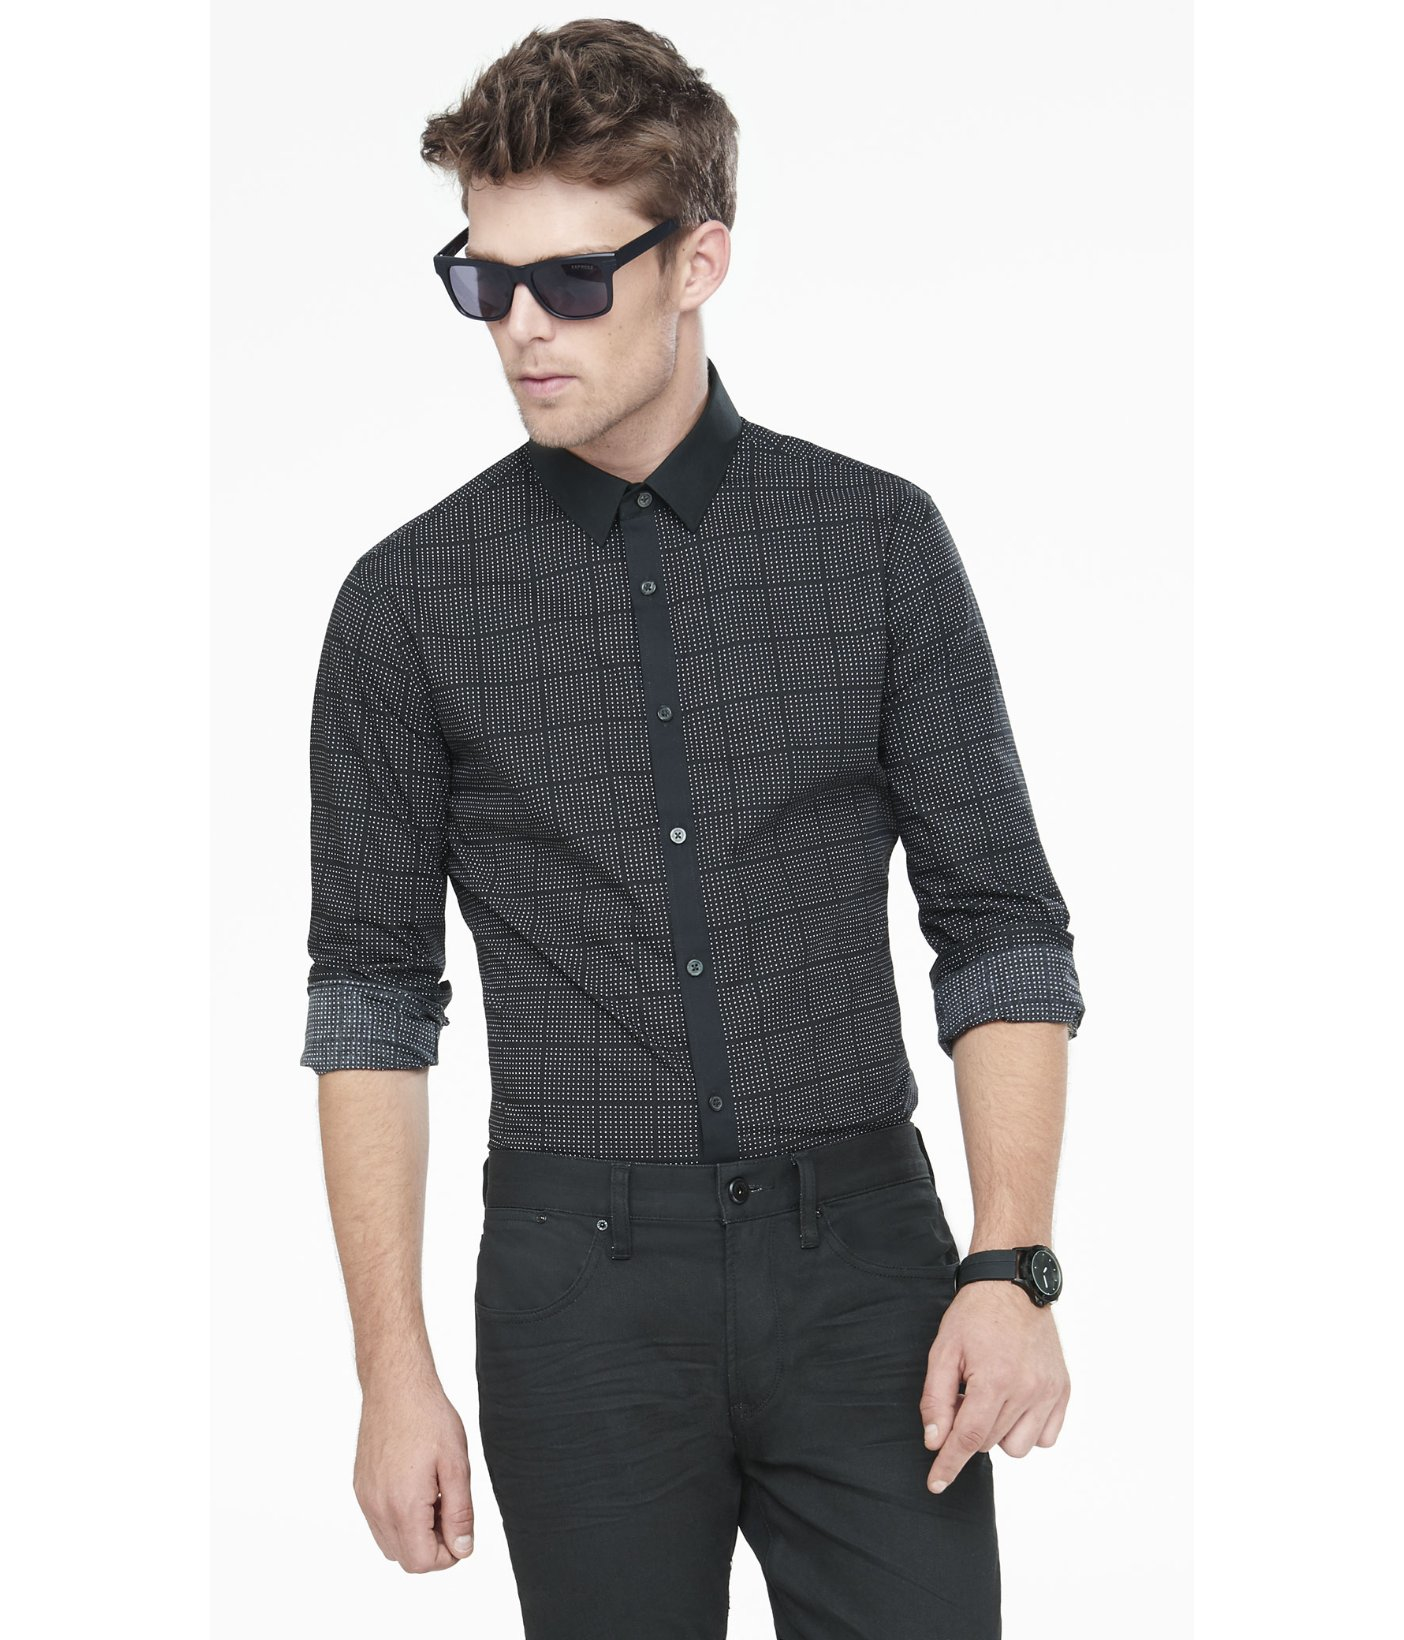 Fitted Black Shirt | Is Shirt